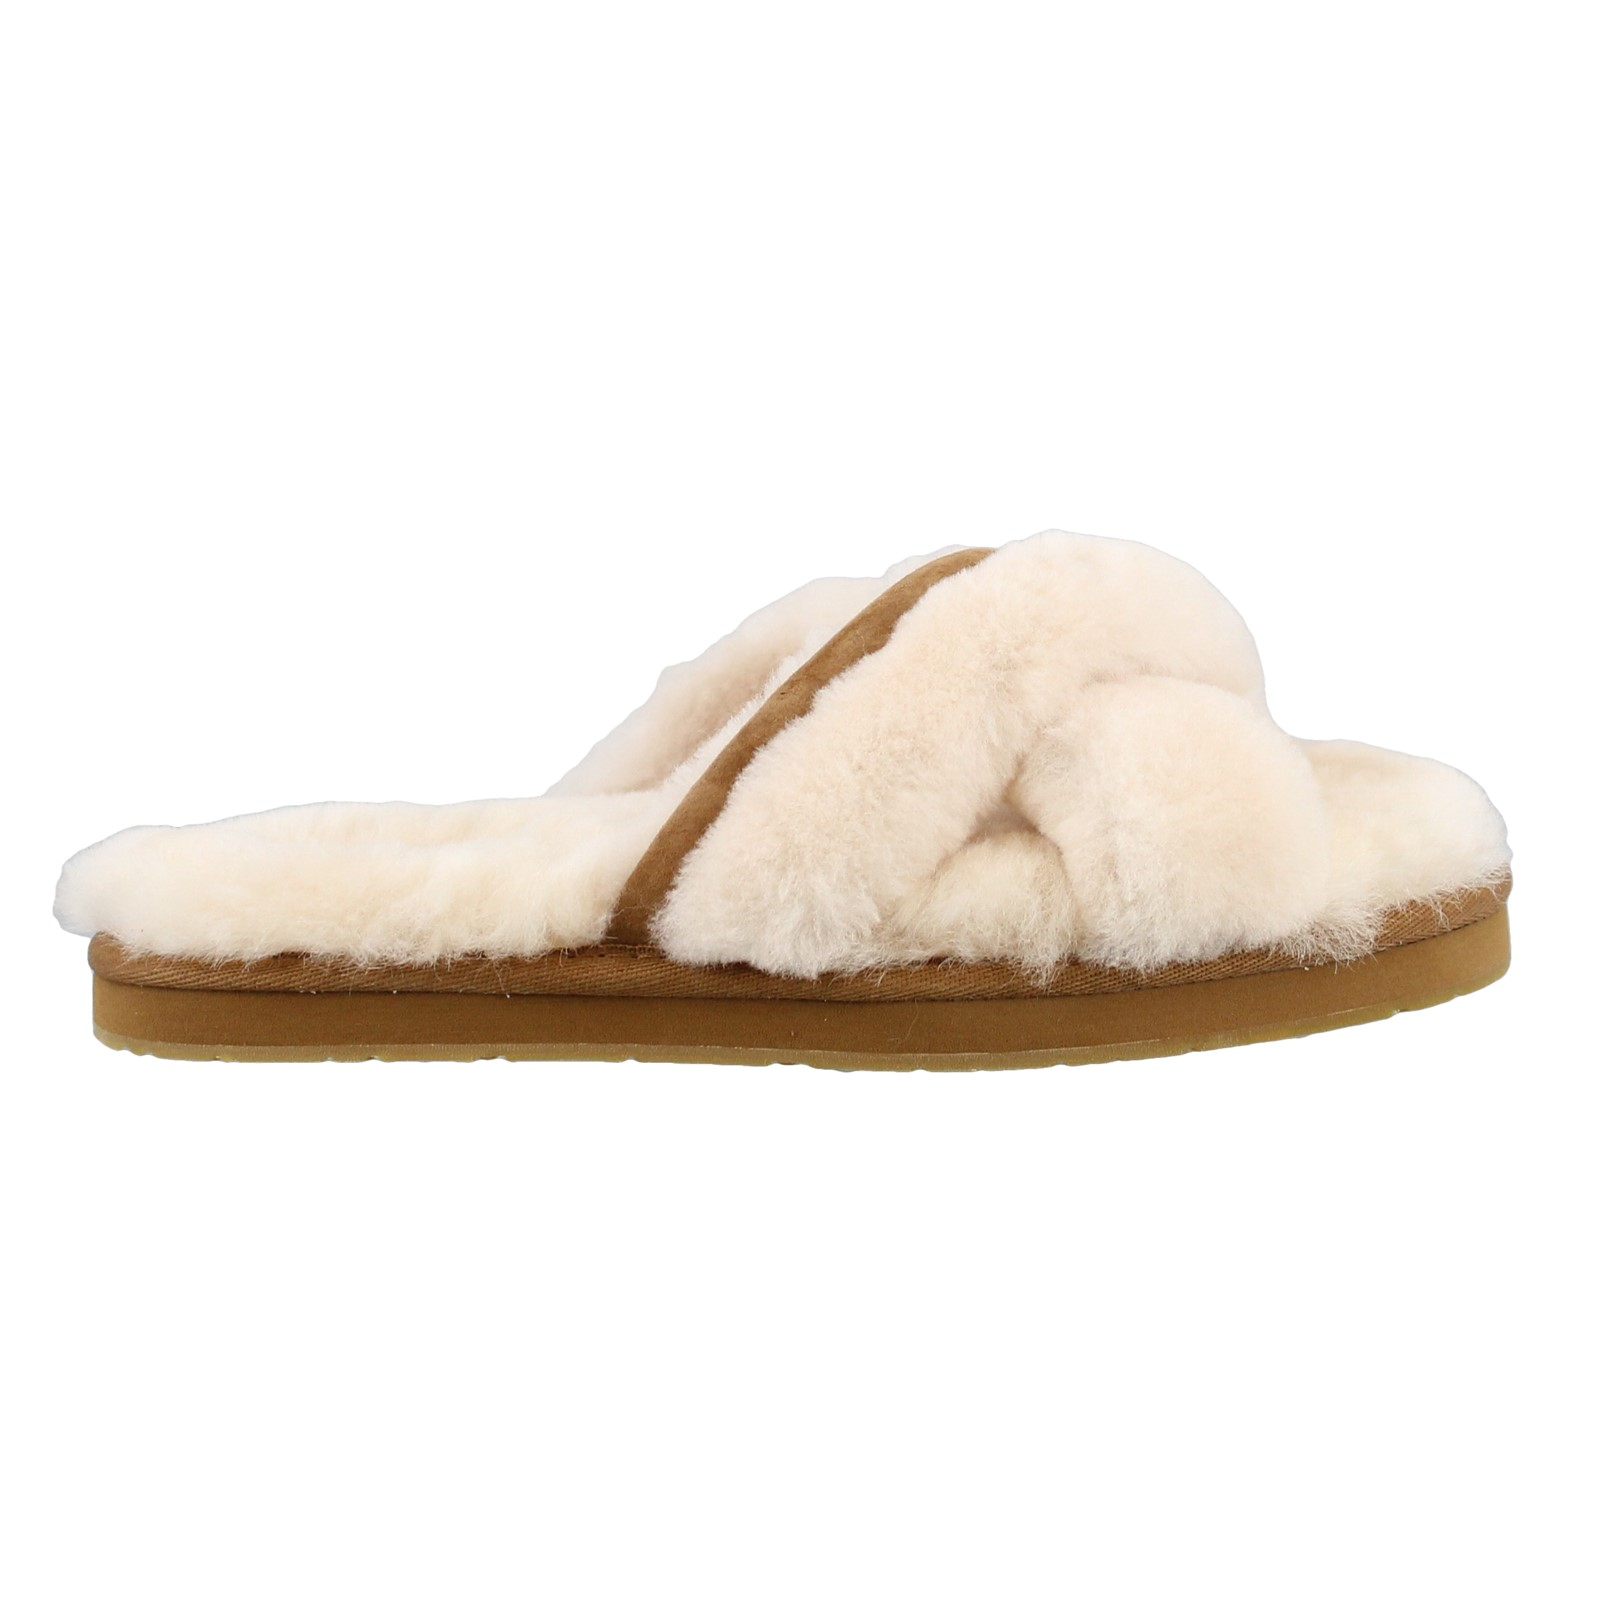 Women's Ugg, Abela Slippers